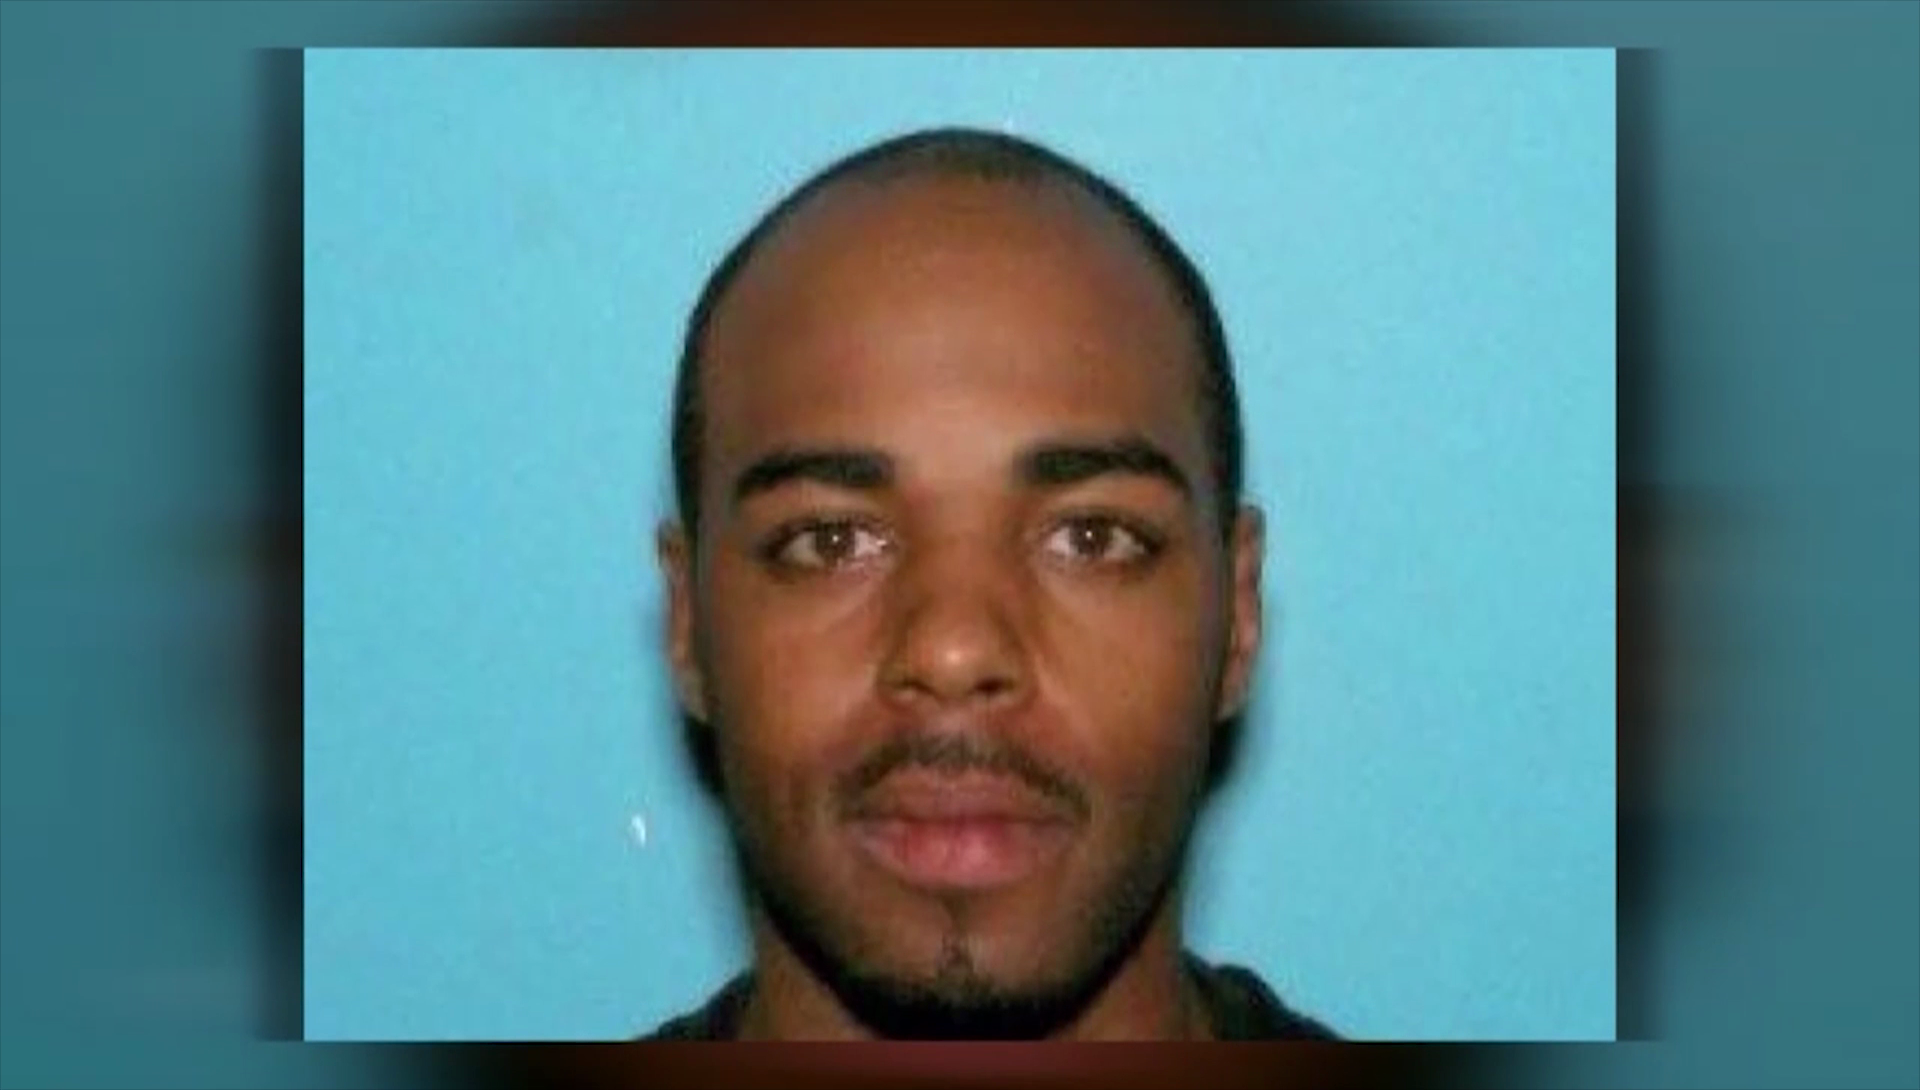 Authorities search for Army reservist who escaped detention center